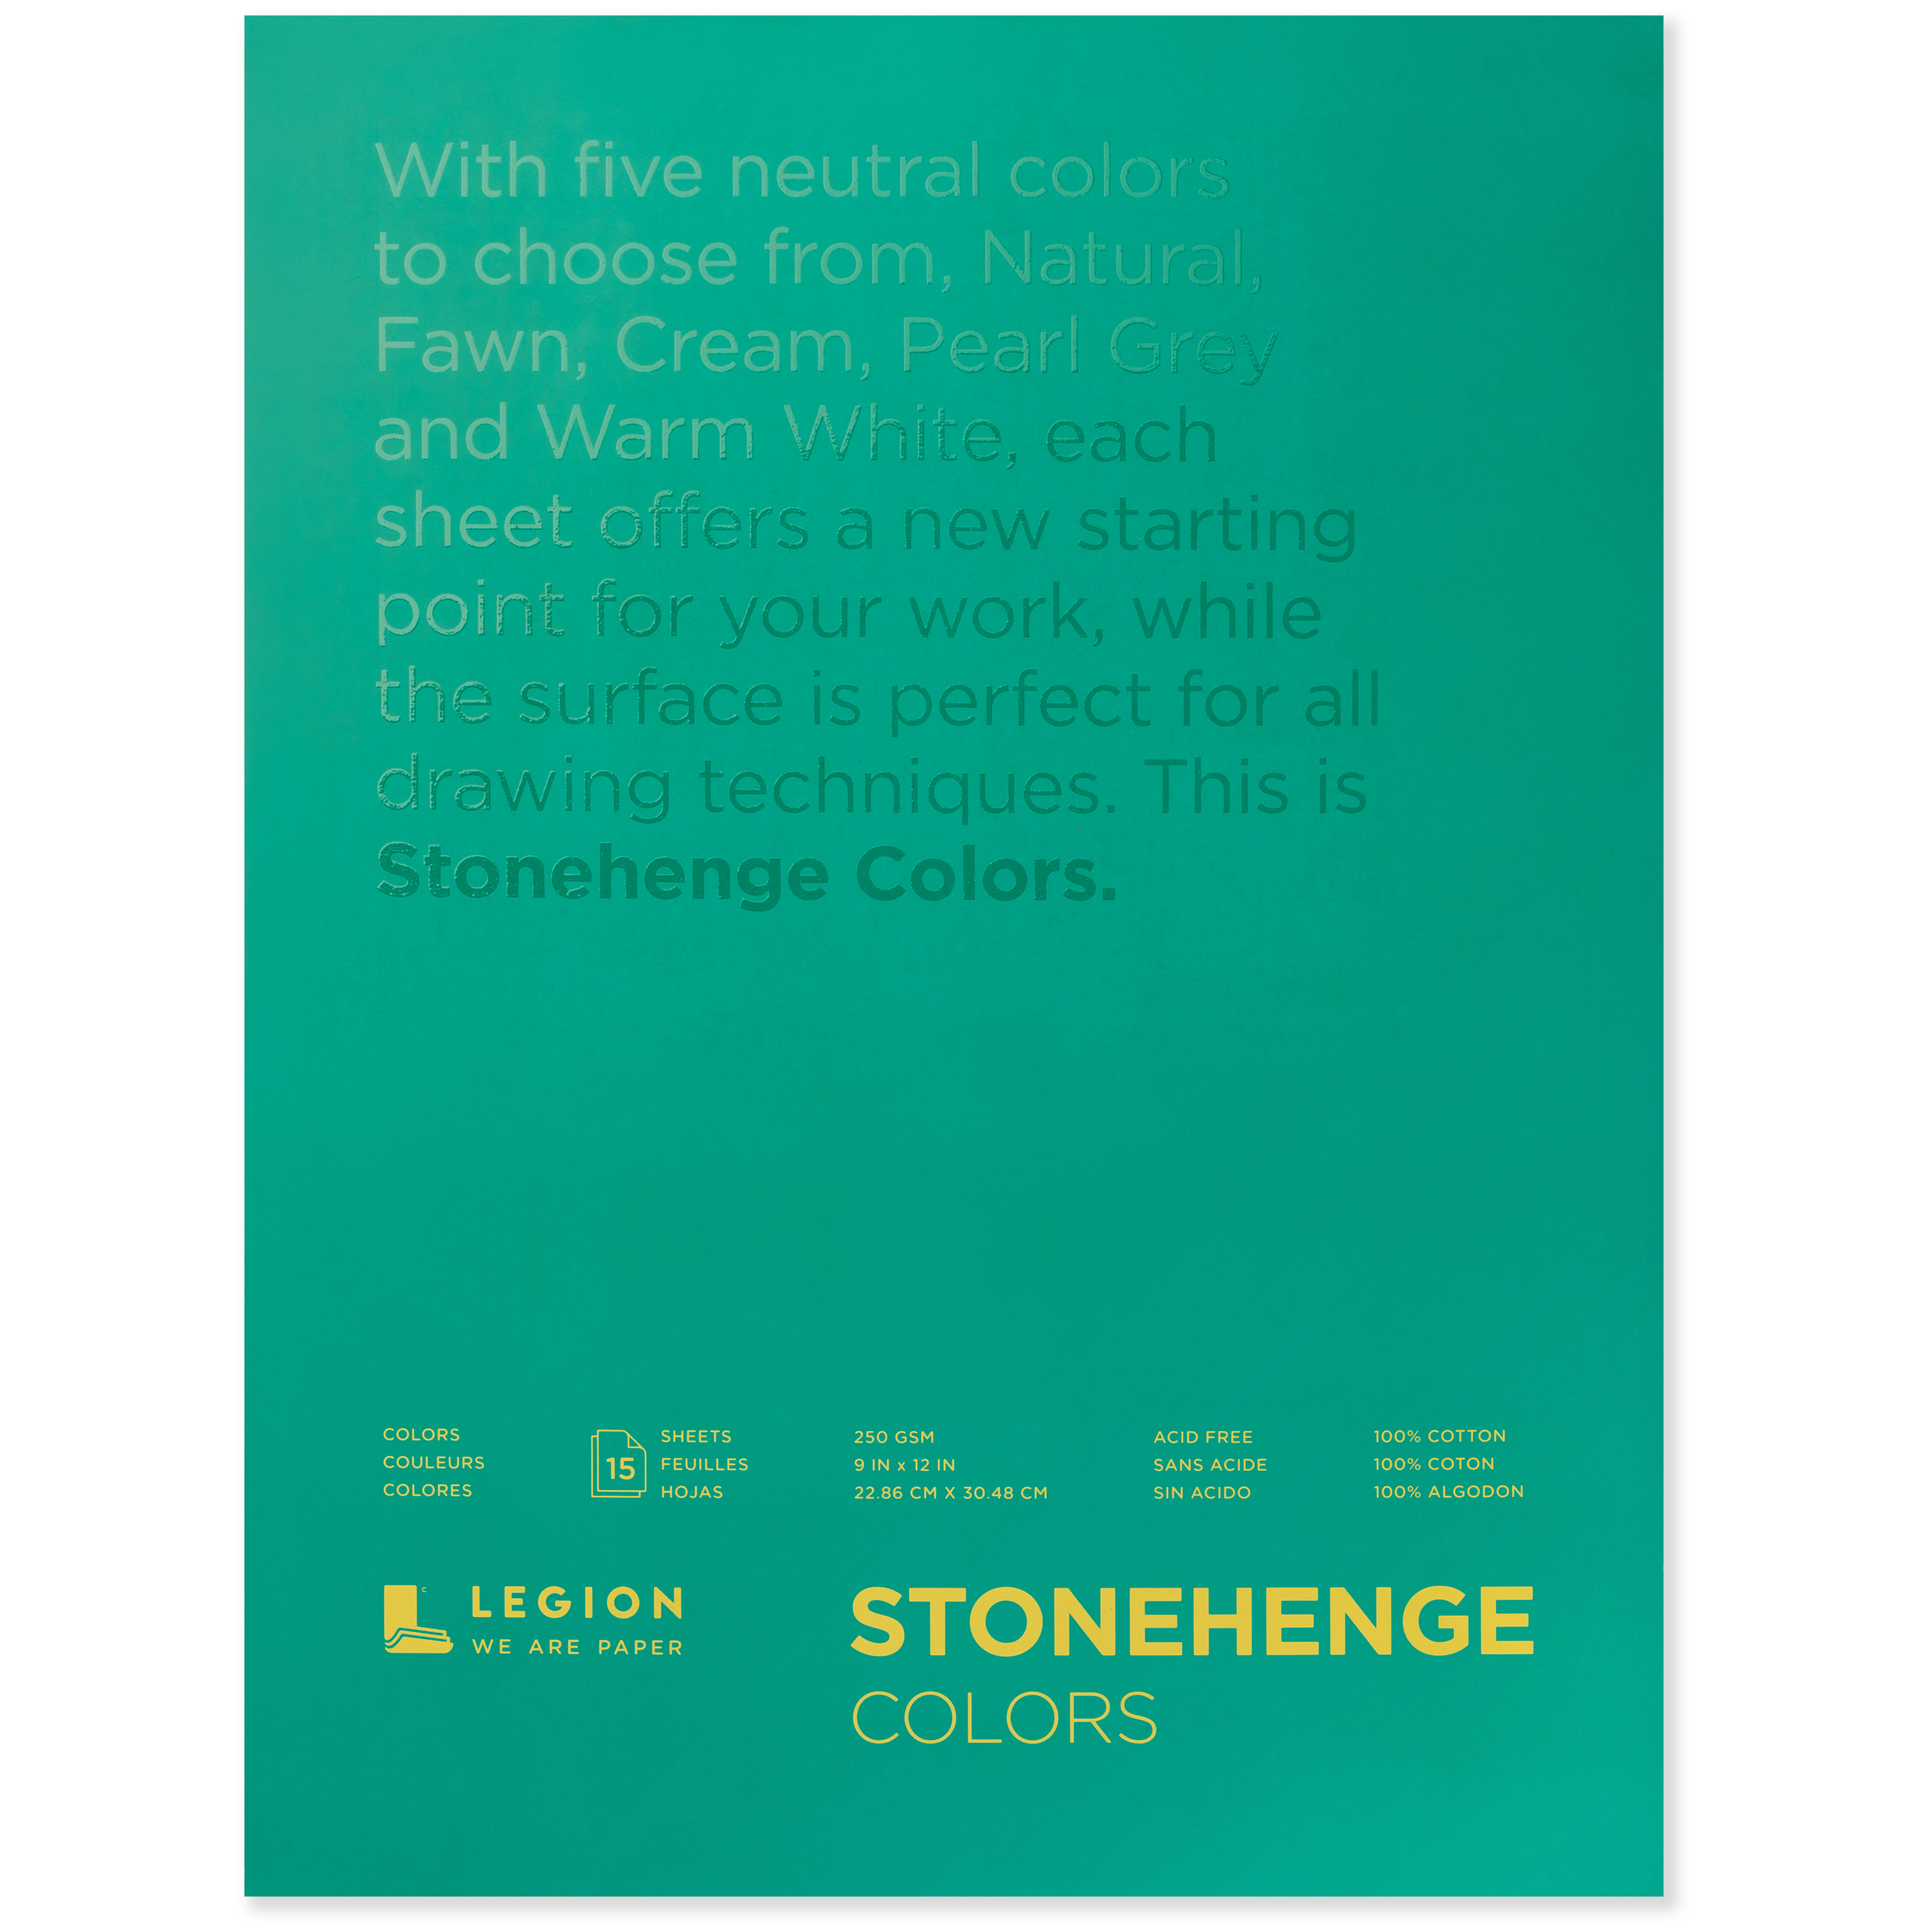 Stonehenge Colors